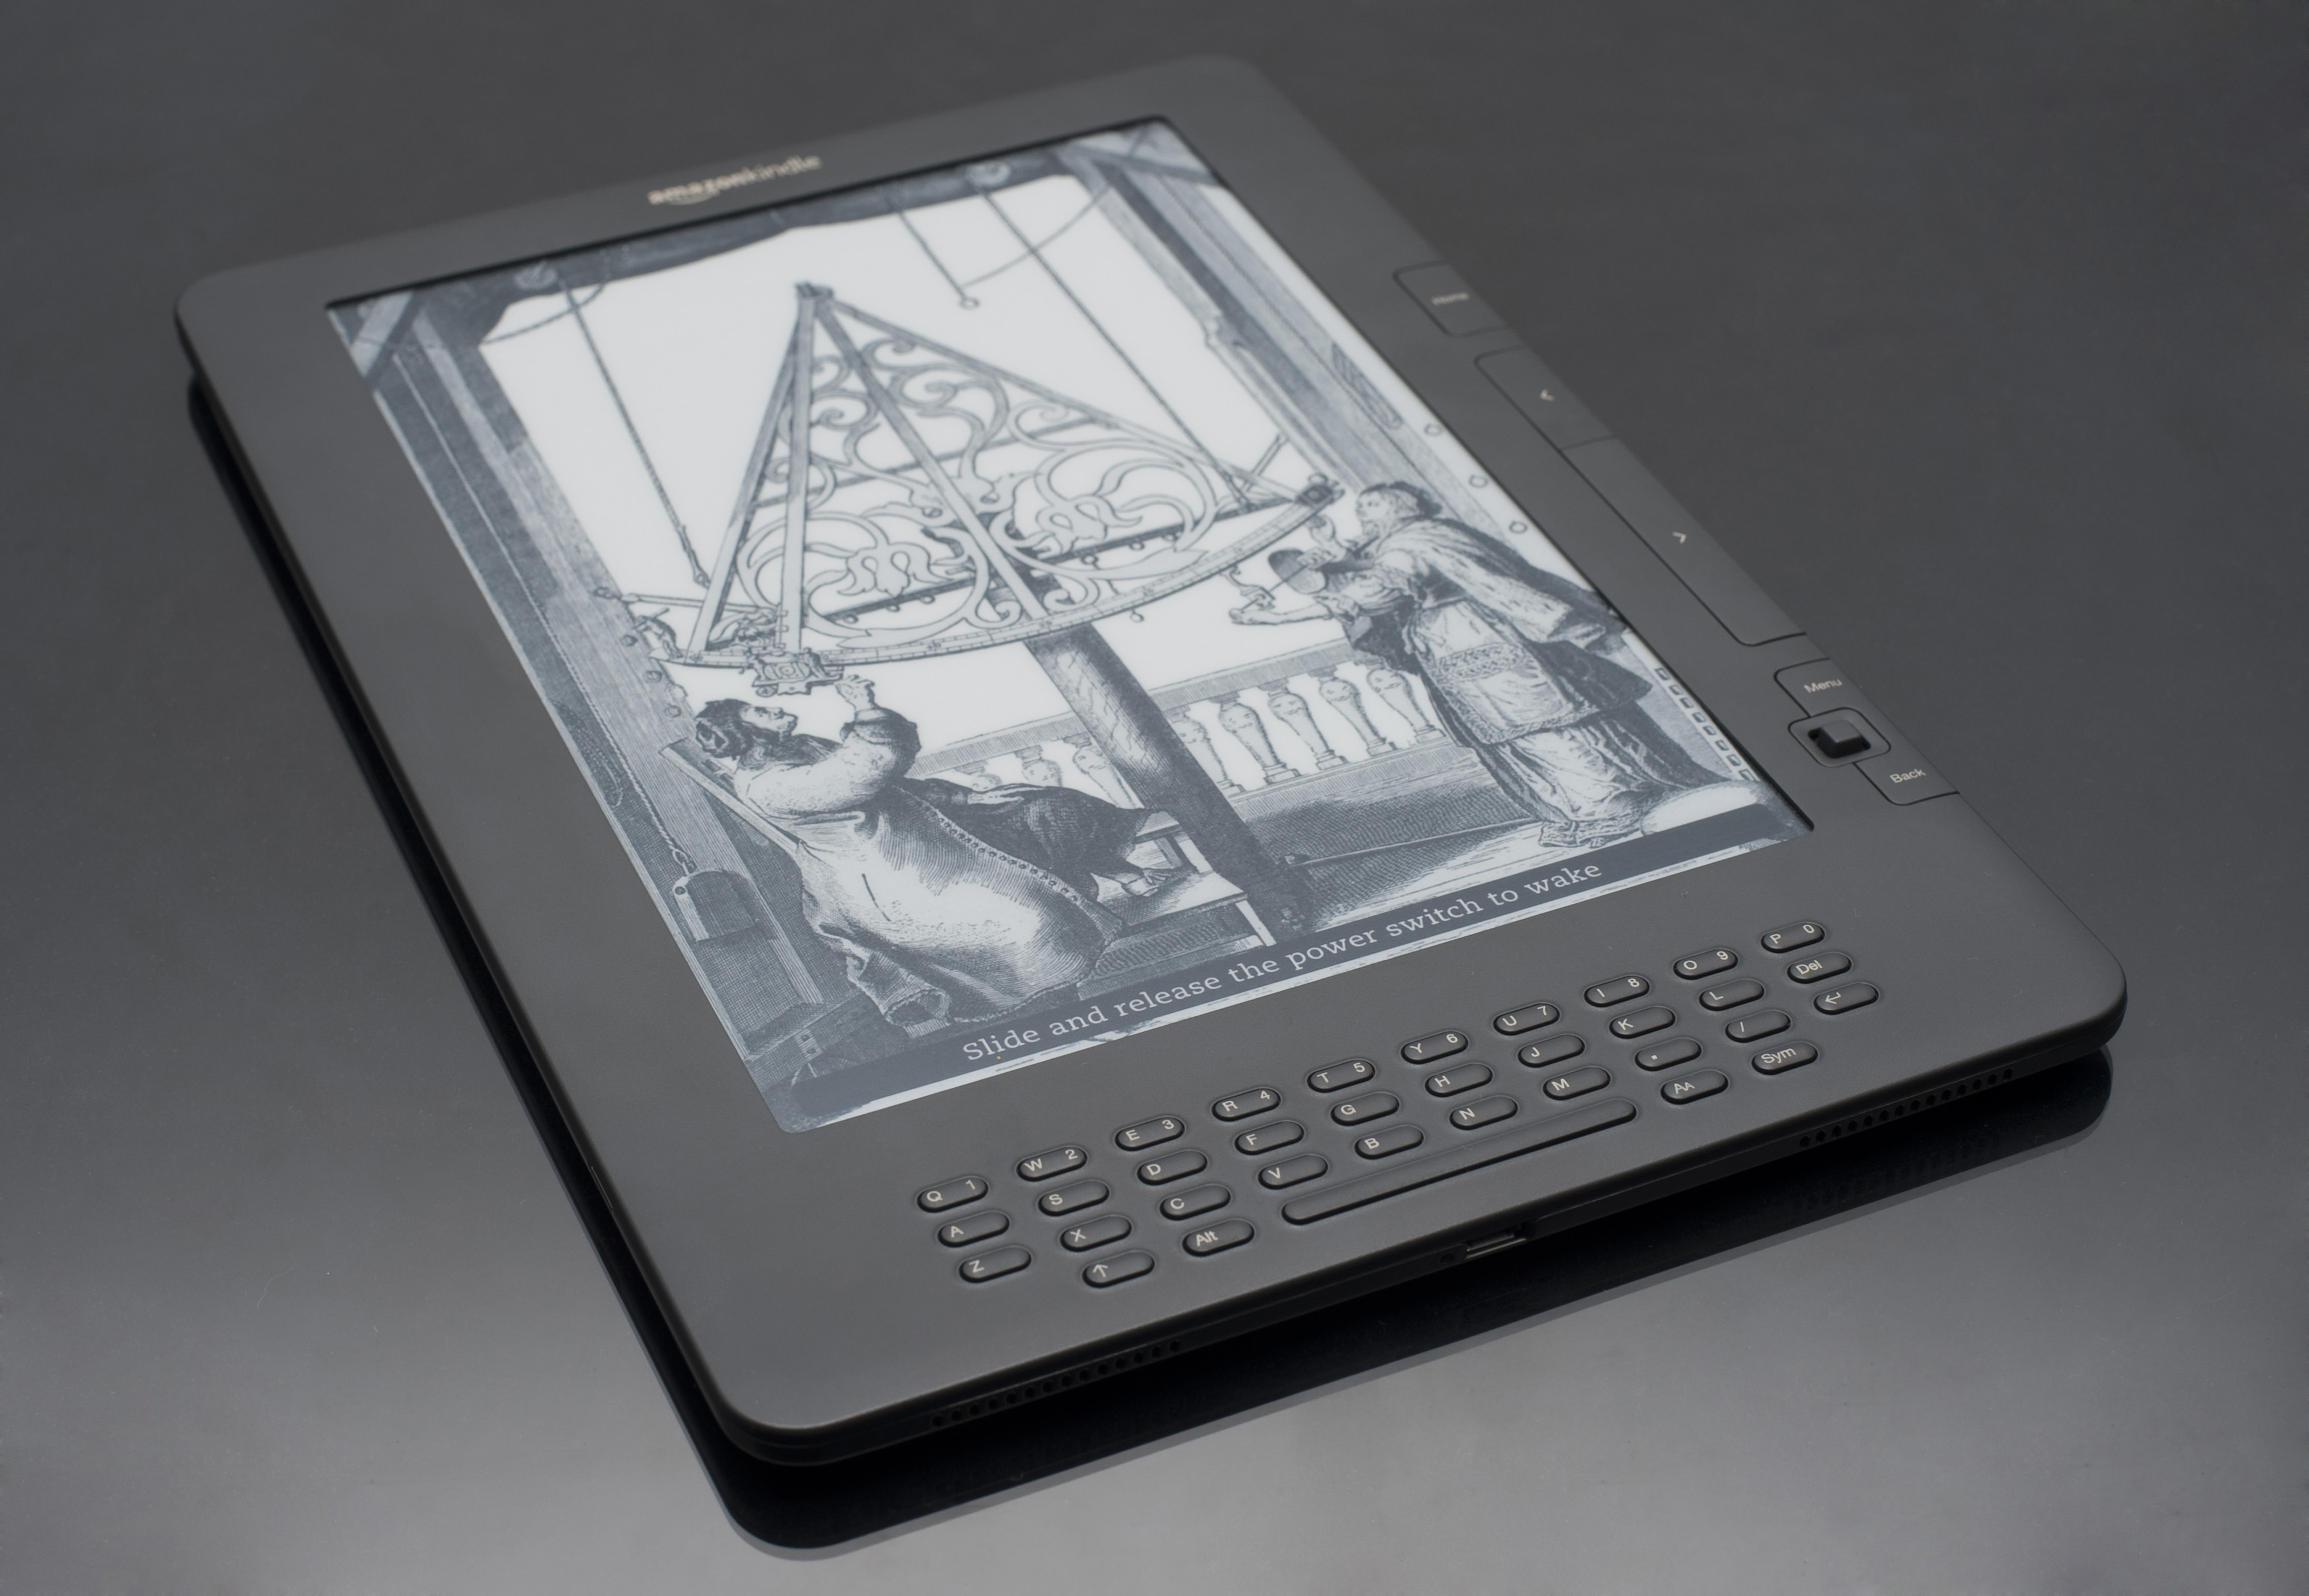 Illustration on Screen of E Ink Electronic Book Reader, Still Life on Grey Background